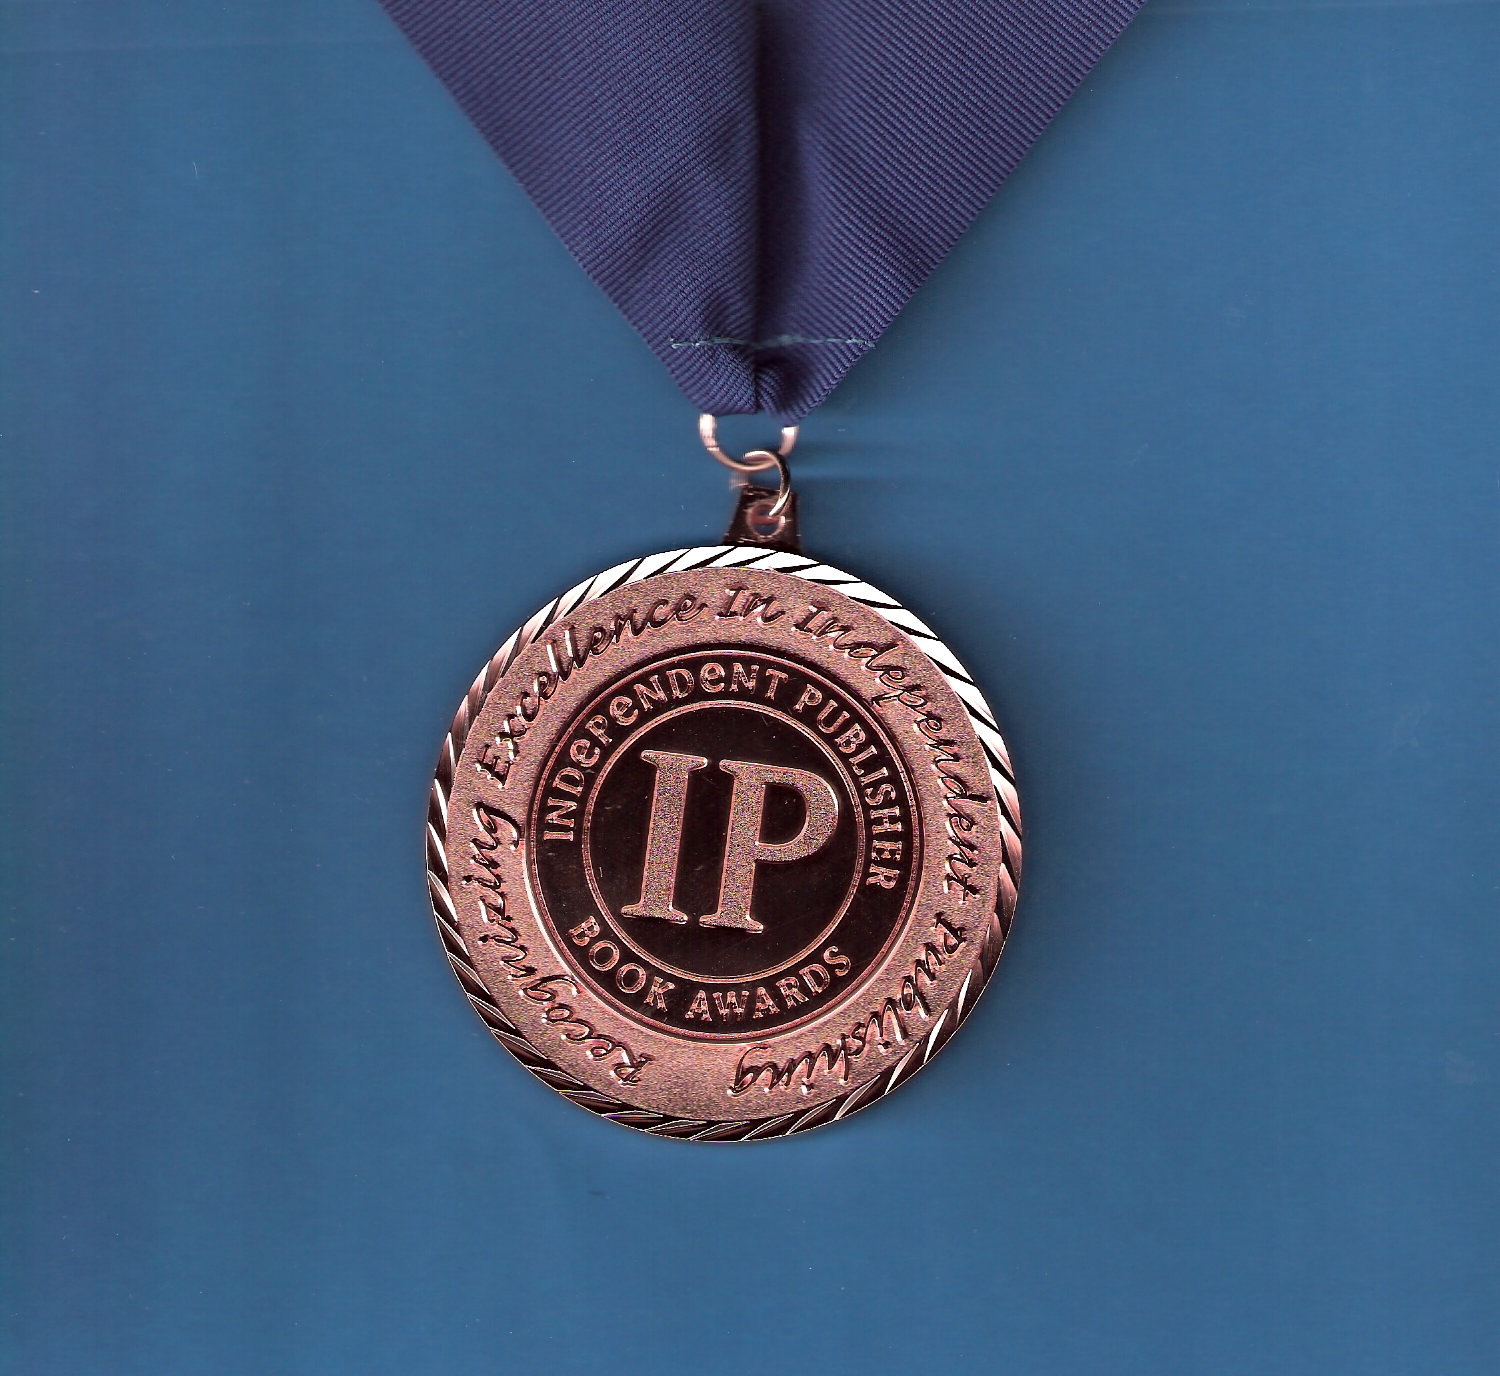 Book Award Medal